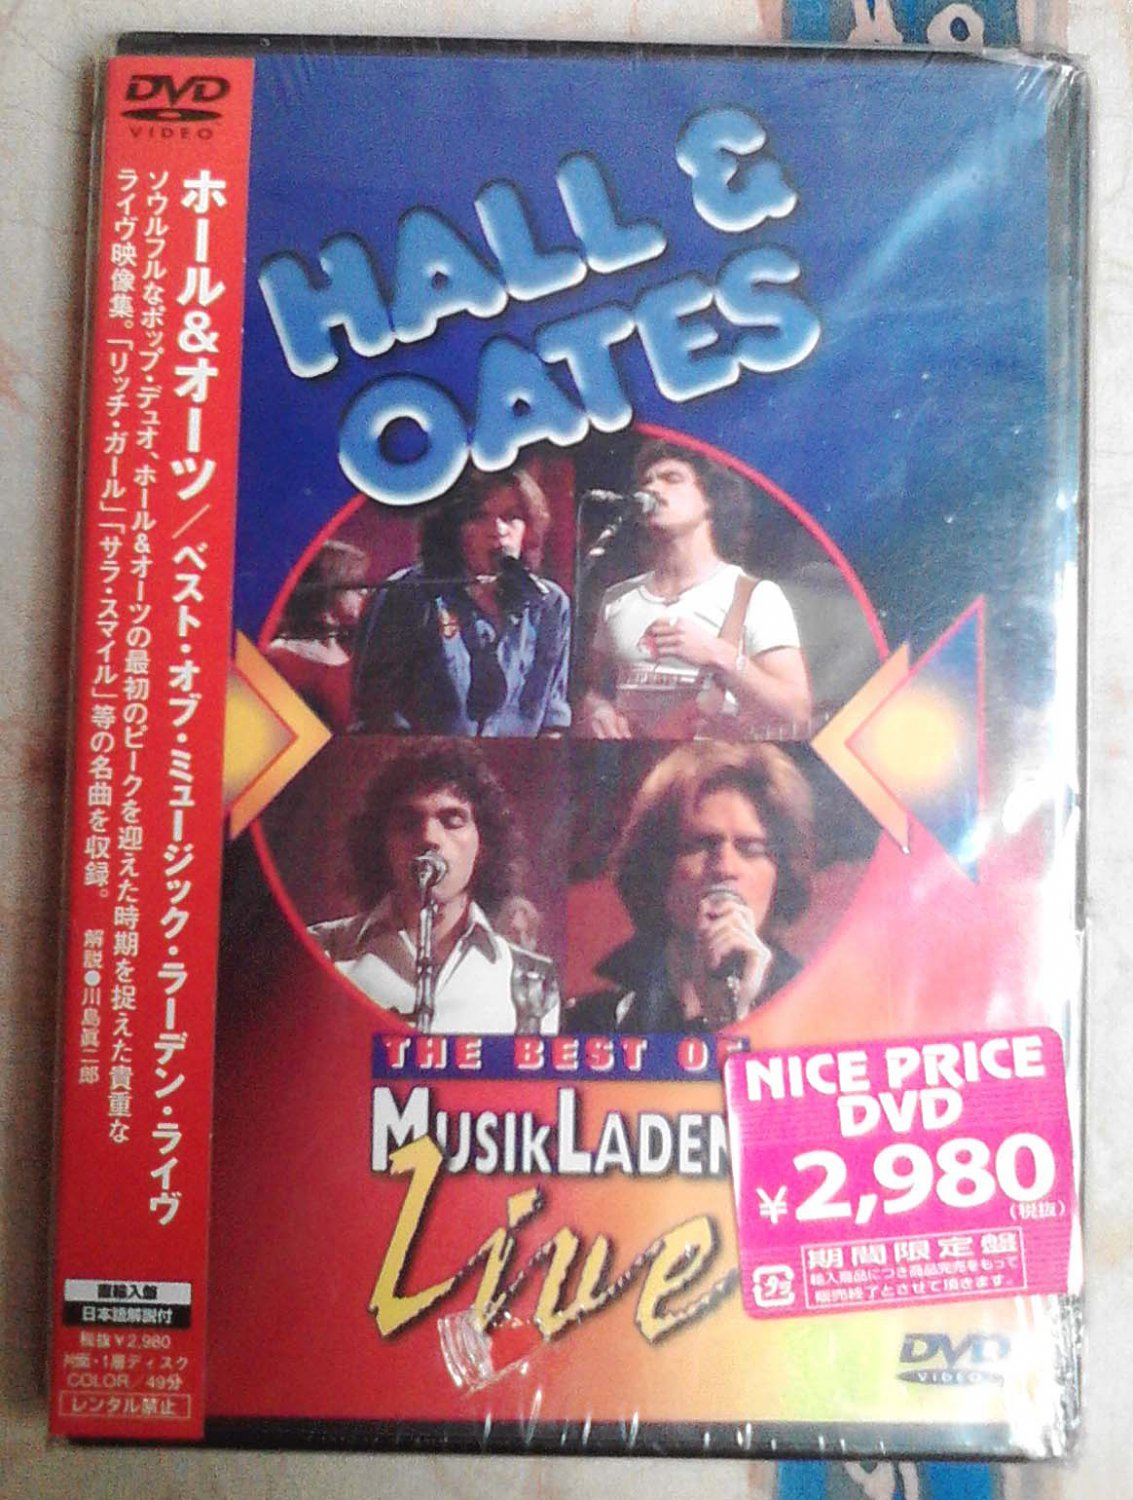 Hall & Oates The Best Of MusikLaden DVD